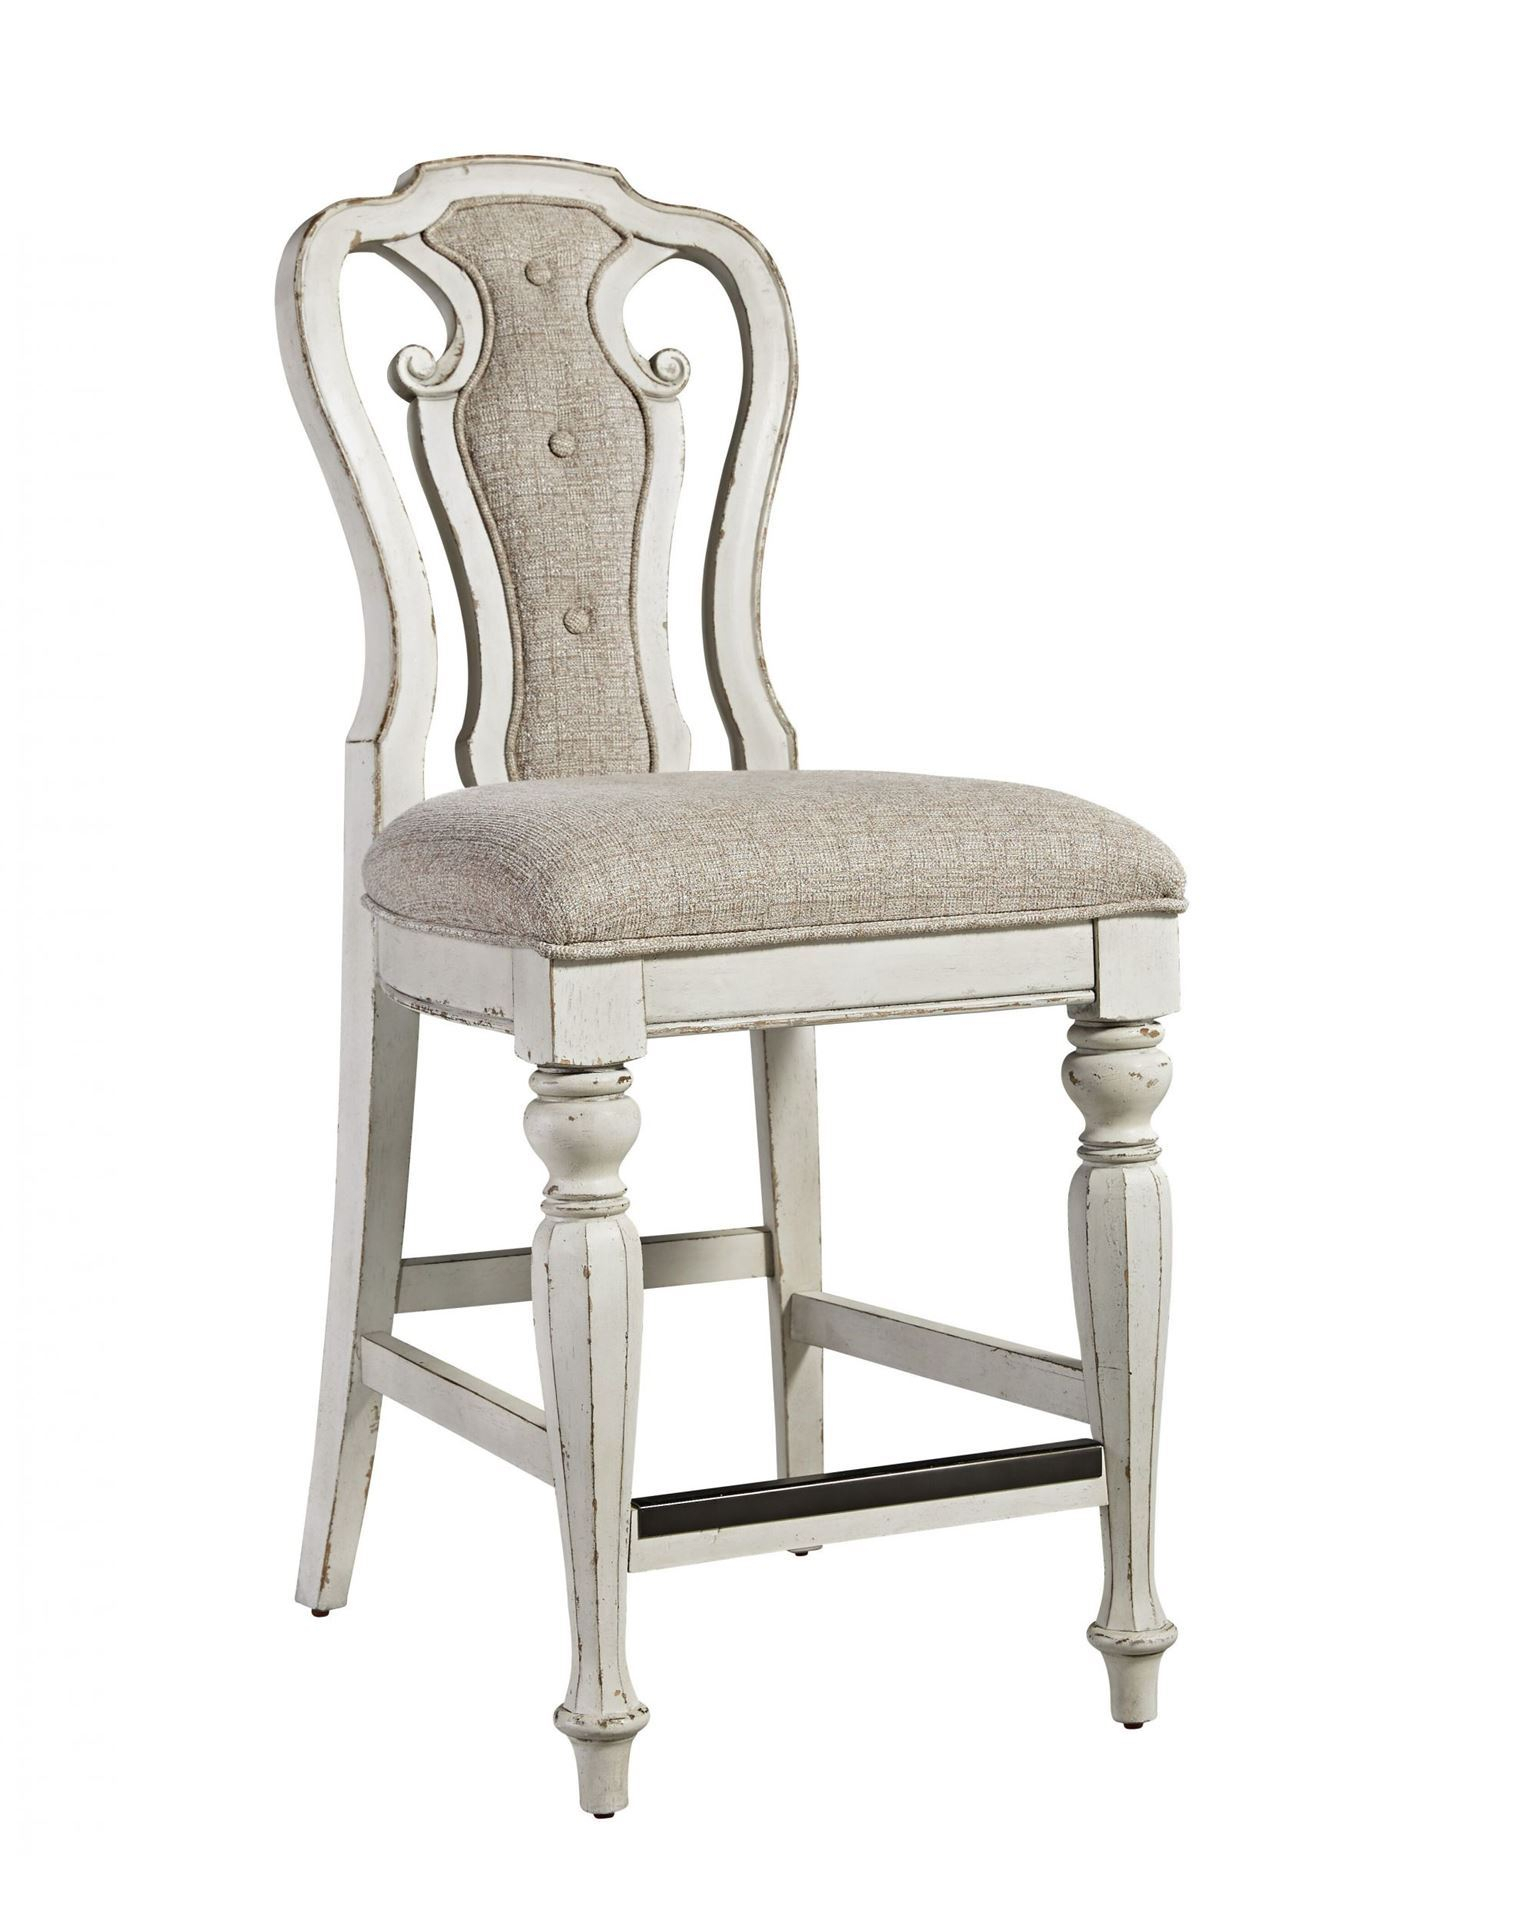 "Magnolia Manor 24"" Stool – Woodstock Furniture & Mattress With Regard To Manor Grey Swivel Chairs (View 20 of 25)"